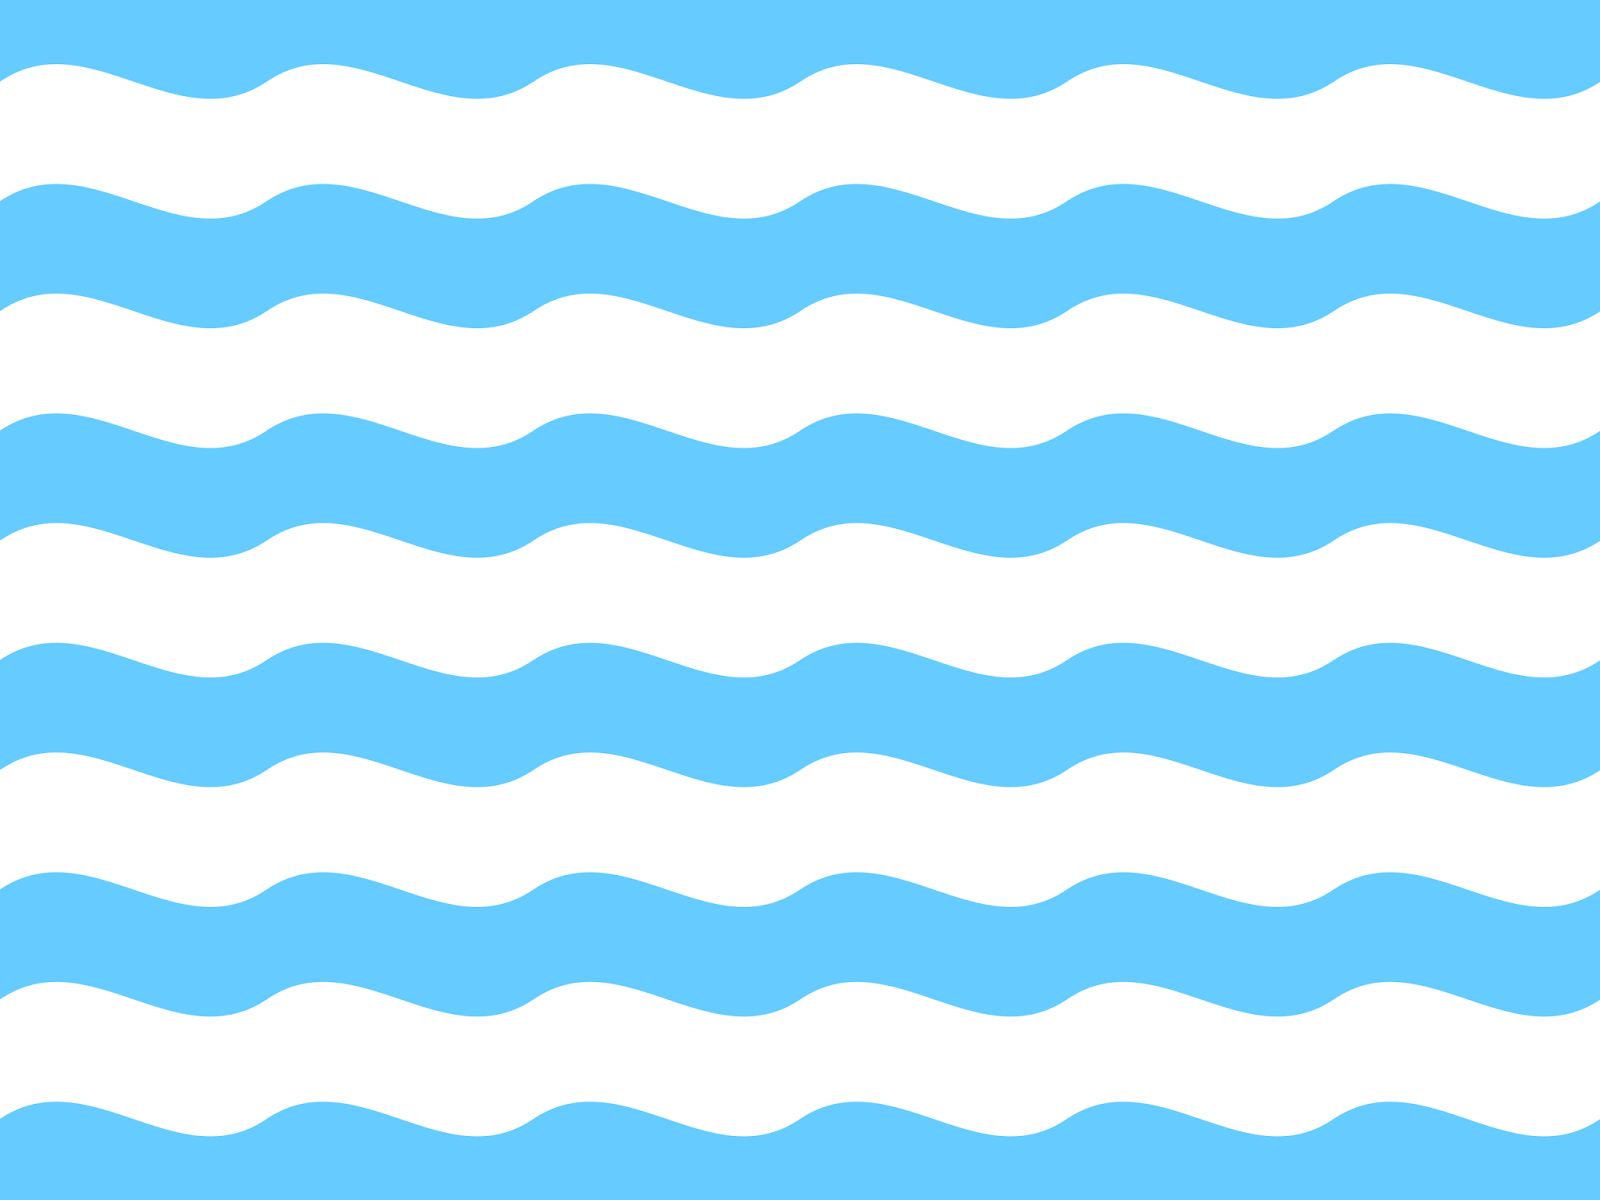 Free cliparts download clip. Waves clipart wave pattern wave